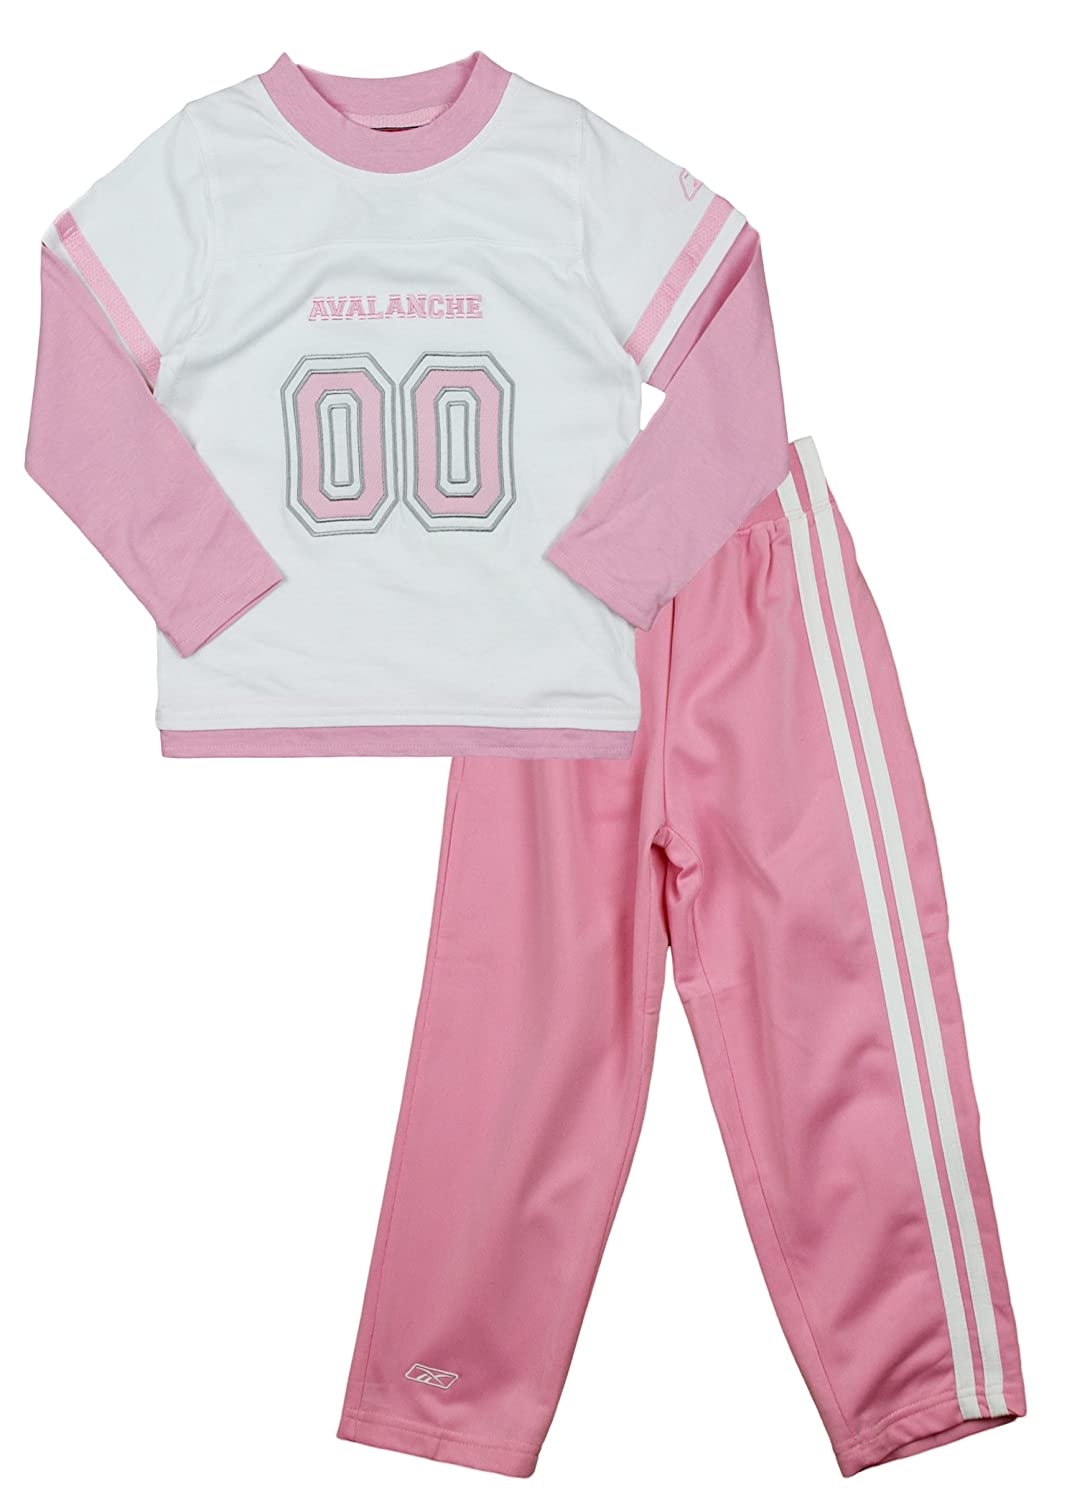 NHL Colorado Avalanche Little Girls 2-piece Sueded Jersey and Pants Set, White/Pink